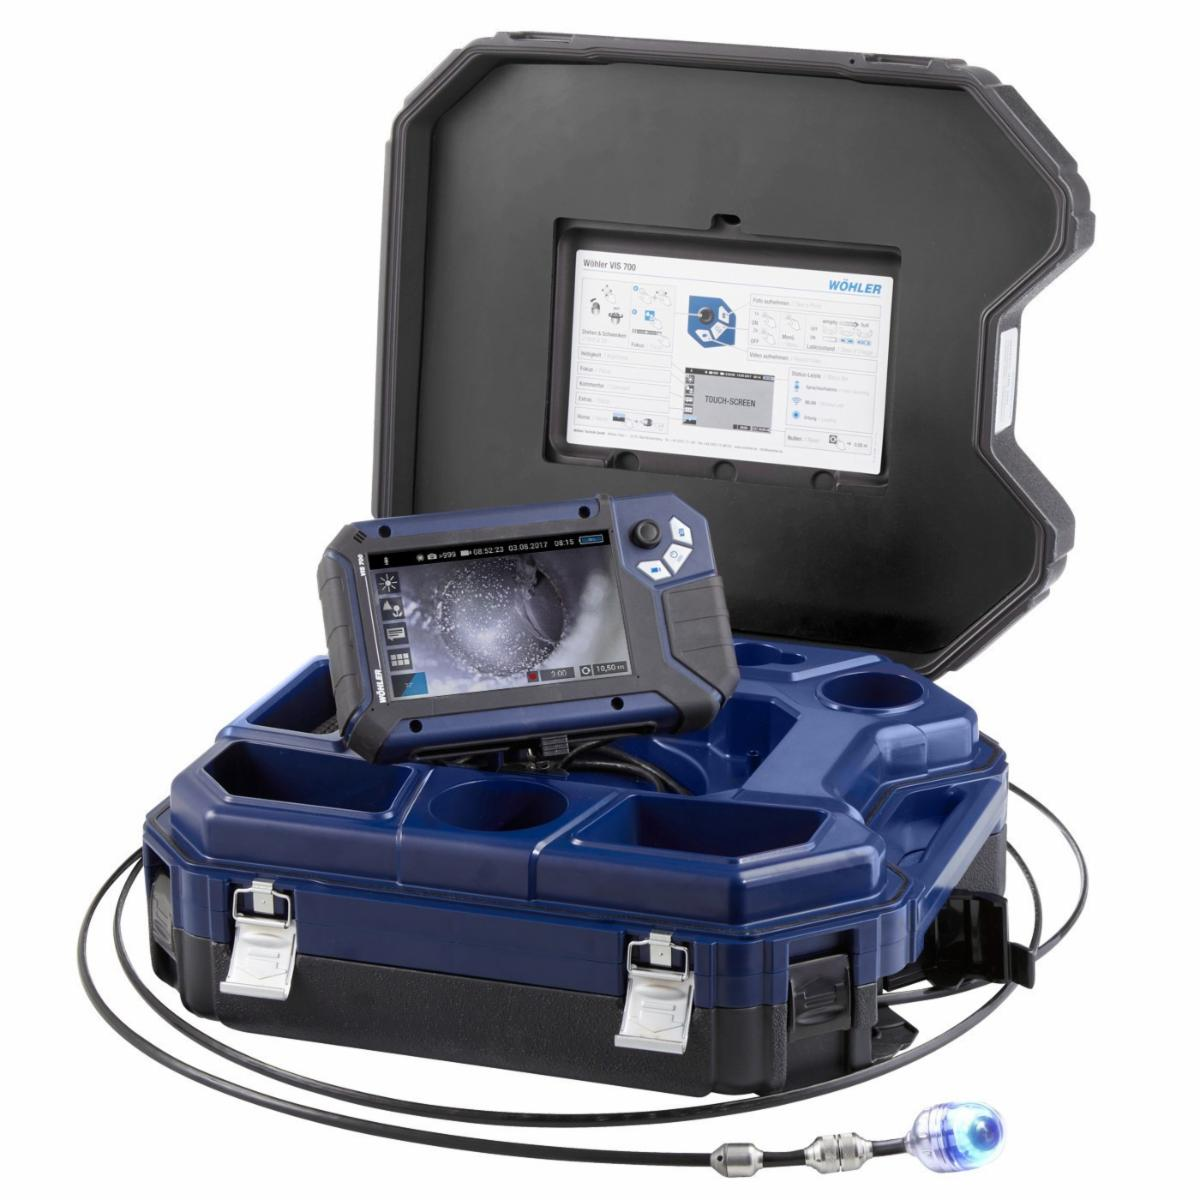 """WOHLER VIS 700 HD INSPECTION CAMERA WITH 1.5"""" CAMERA HEAD"""